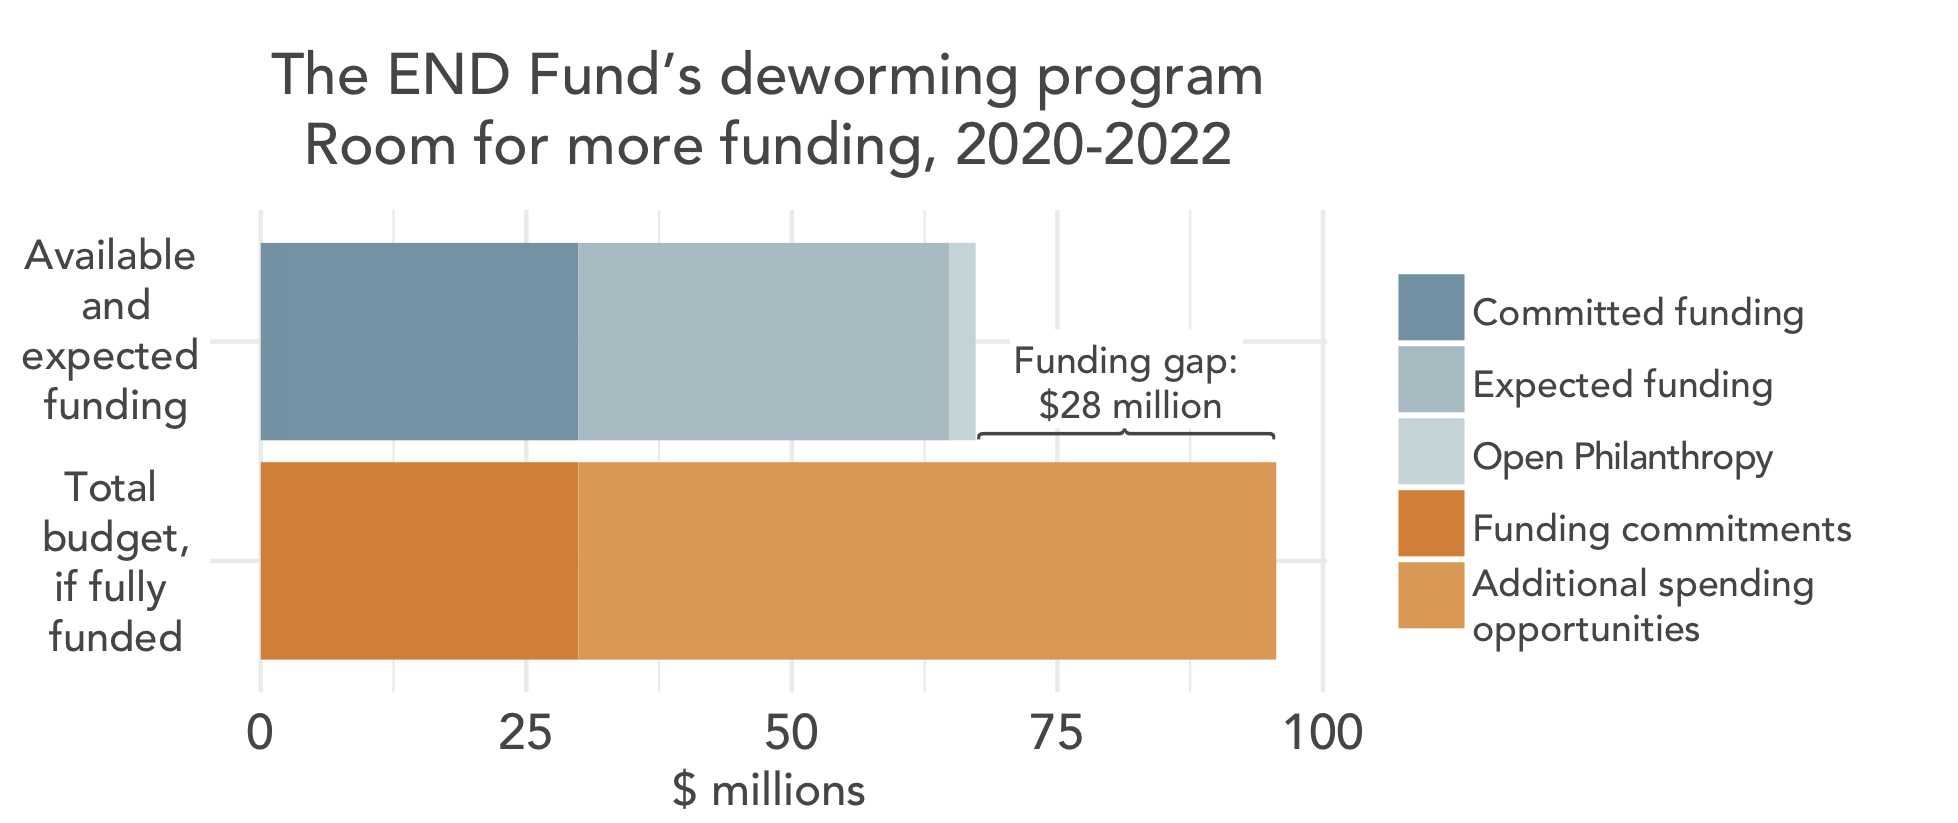 Room for more funding for The END Fund for deworming 2020-2022